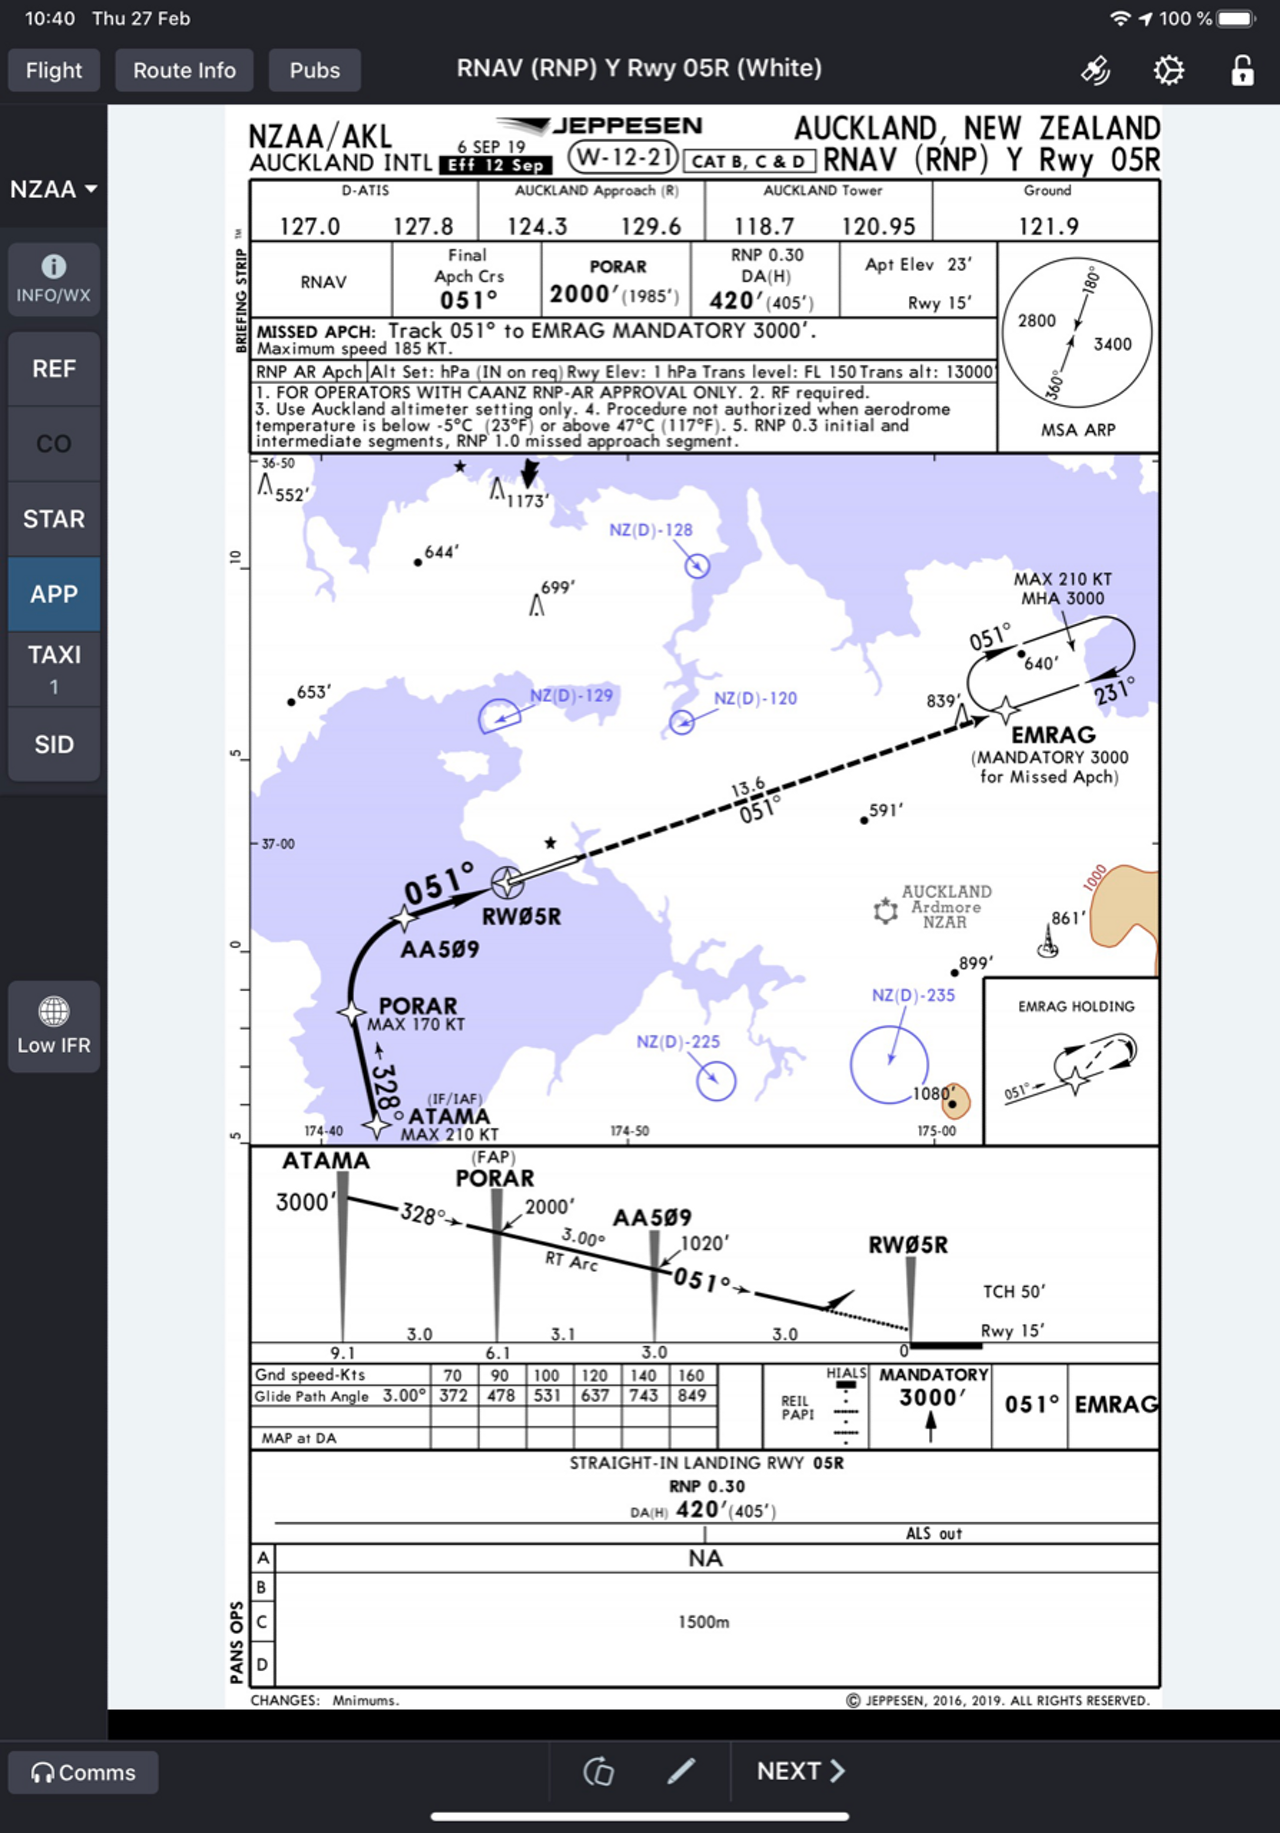 Required Navigation Performance – Authorization Required' (RNP-AR) approaches, such as depicted here on the pilot's EFB screen, enable the aircraft to follow precise three-dimensional curved flight paths through congested airspace, around noise sensitive areas or through difficult terrain.